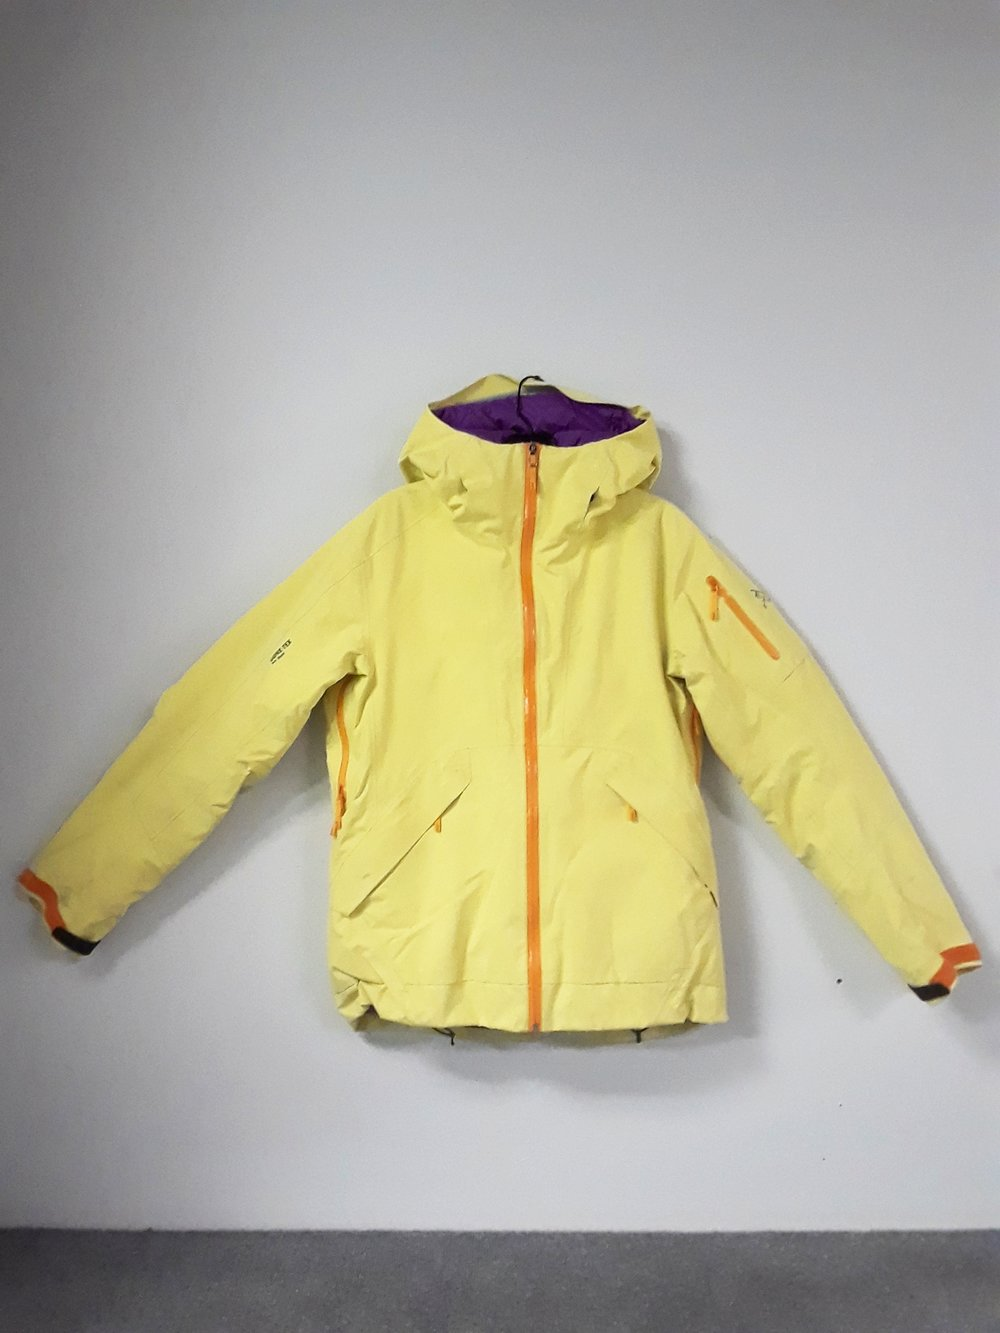 This one and done insulated Arcteryx jacket will have you covered on those frigid days out on the mountain. Equipped with a powder skirt, pit zips, and Gore Tex Pro fabric you'll have zero complaints on those inverted days. The size is a women's medium and we have her priced at $289